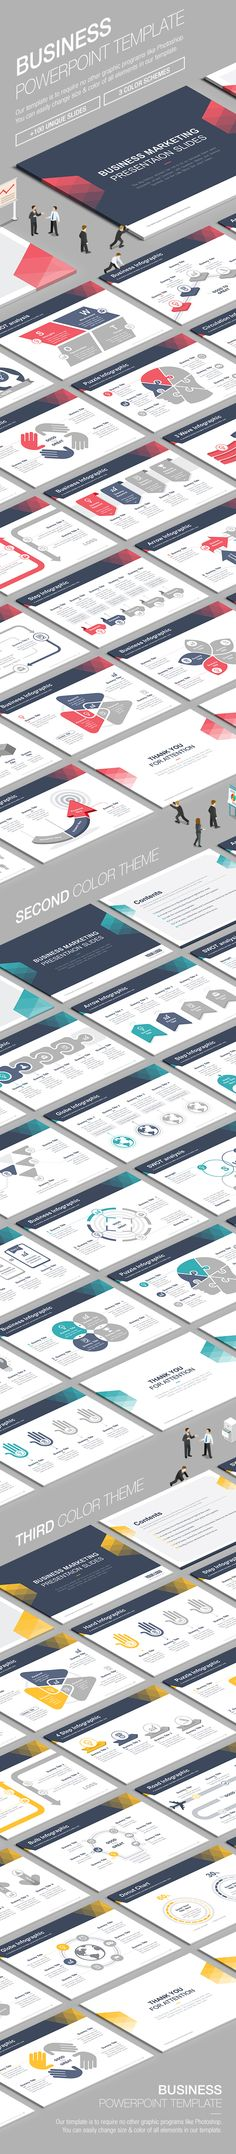 Business Powerpoint Template. Download here: https://graphicriver.net/item/business-powerpoint-template-007/17648247?ref=ksioks